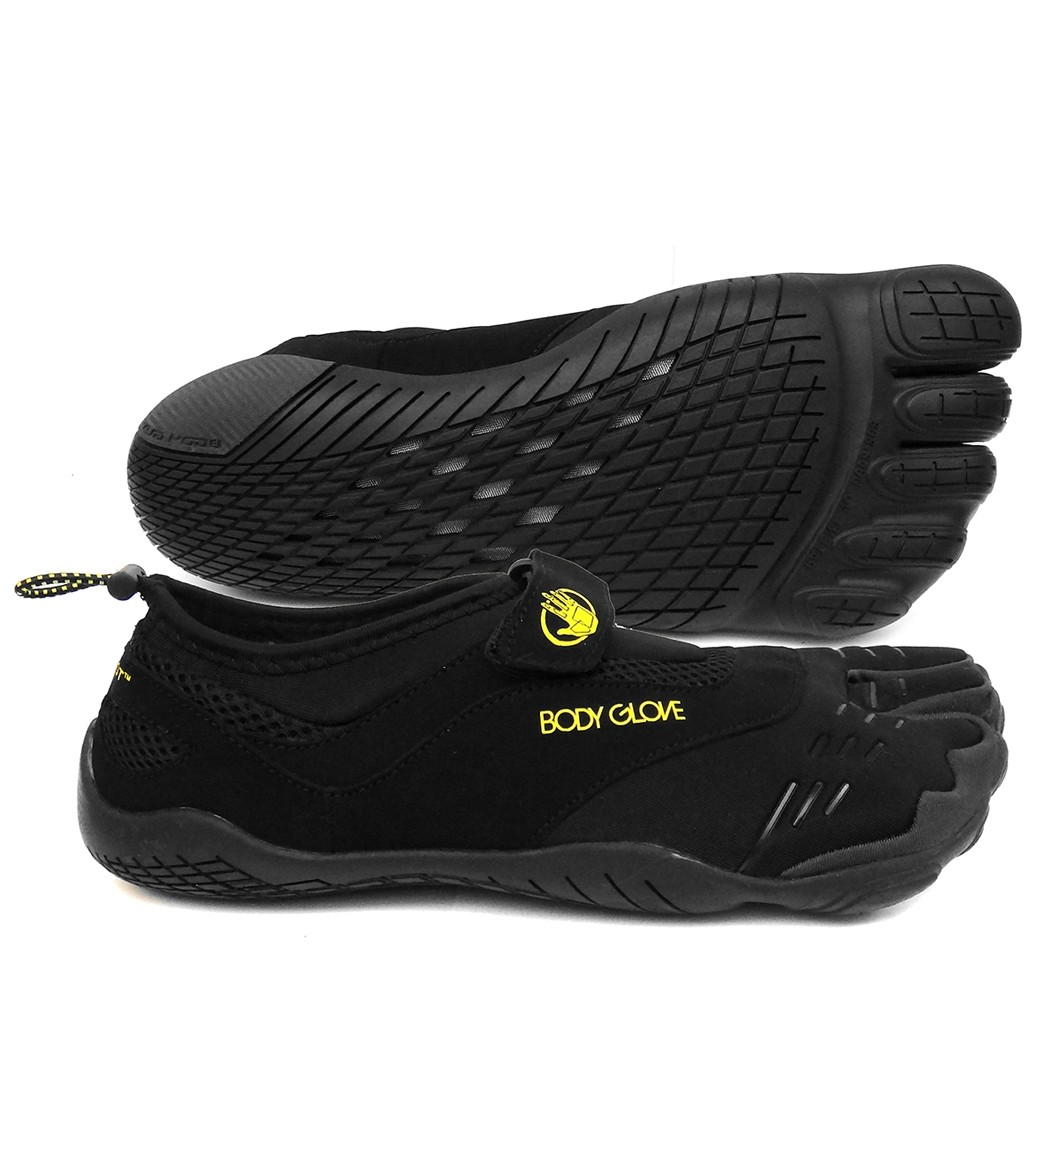 Body Glove Men's 3T Max Water Shoe at SwimOutlet.com - Free Shipping